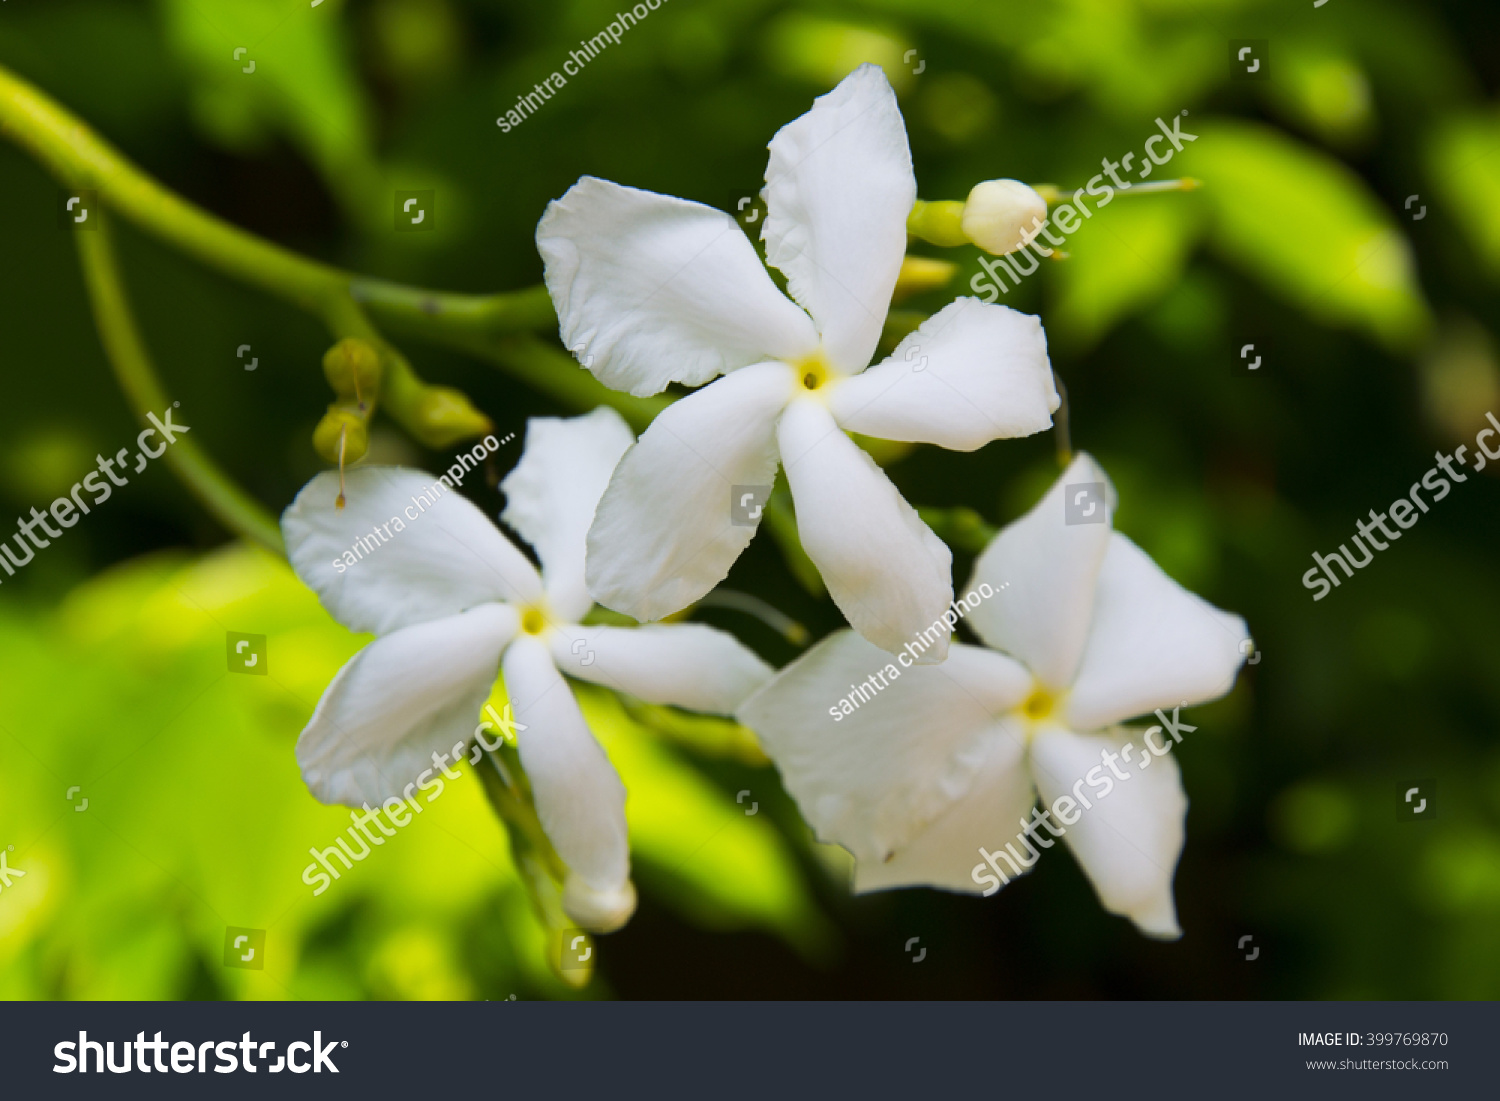 White Gardenia Flower Meaning Images Fresh Lotus Flowers